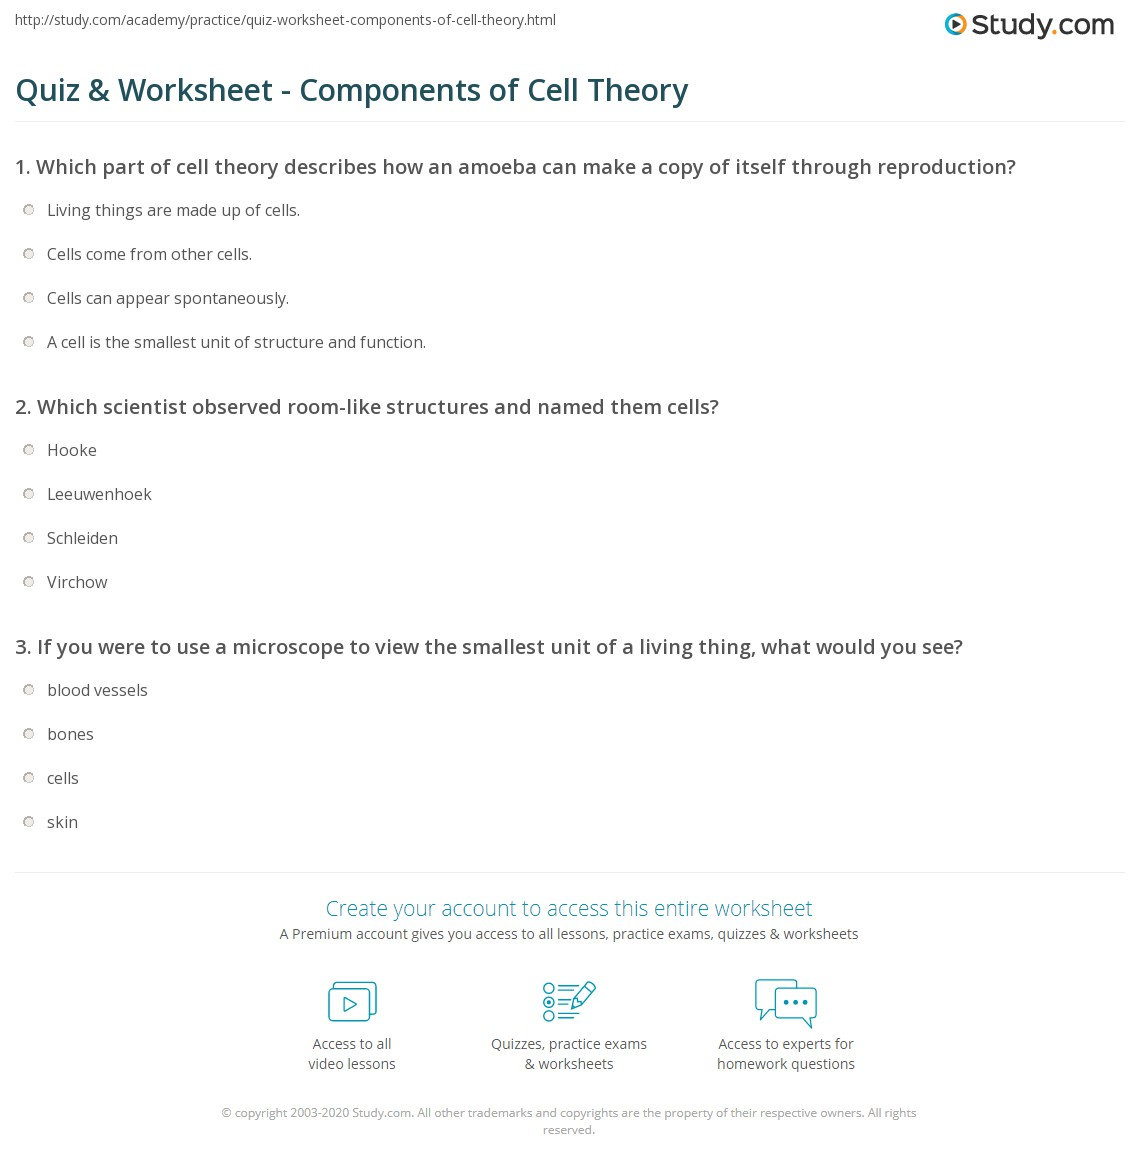 Theory Timeline Worksheet - Delibertad alphabet worksheets, grade worksheets, free worksheets, and math worksheets Cell Part Worksheet 2 1149 x 1140